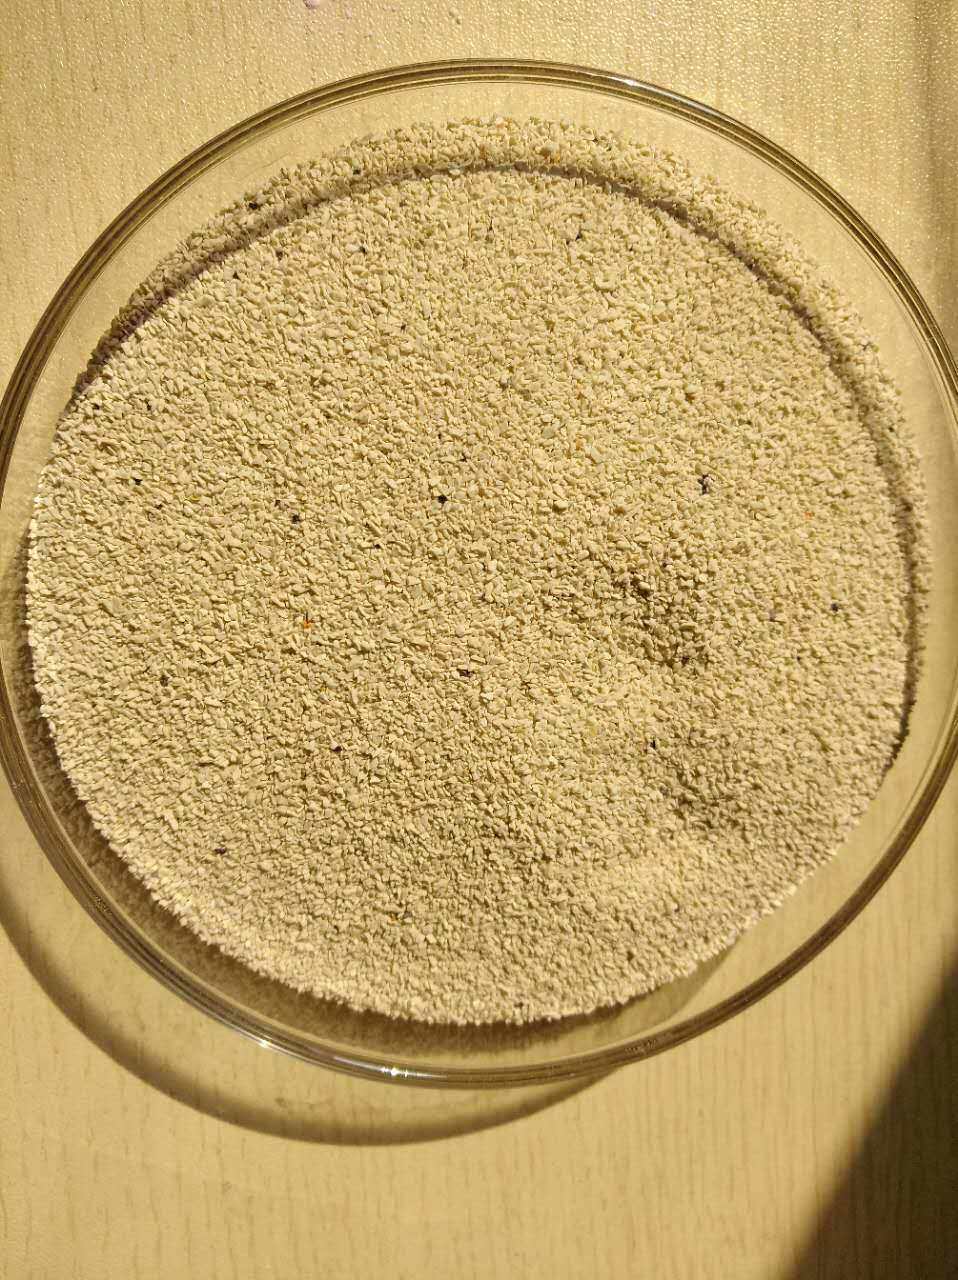 Acid-Activated Bentonite for Refining Oil and Food Oil